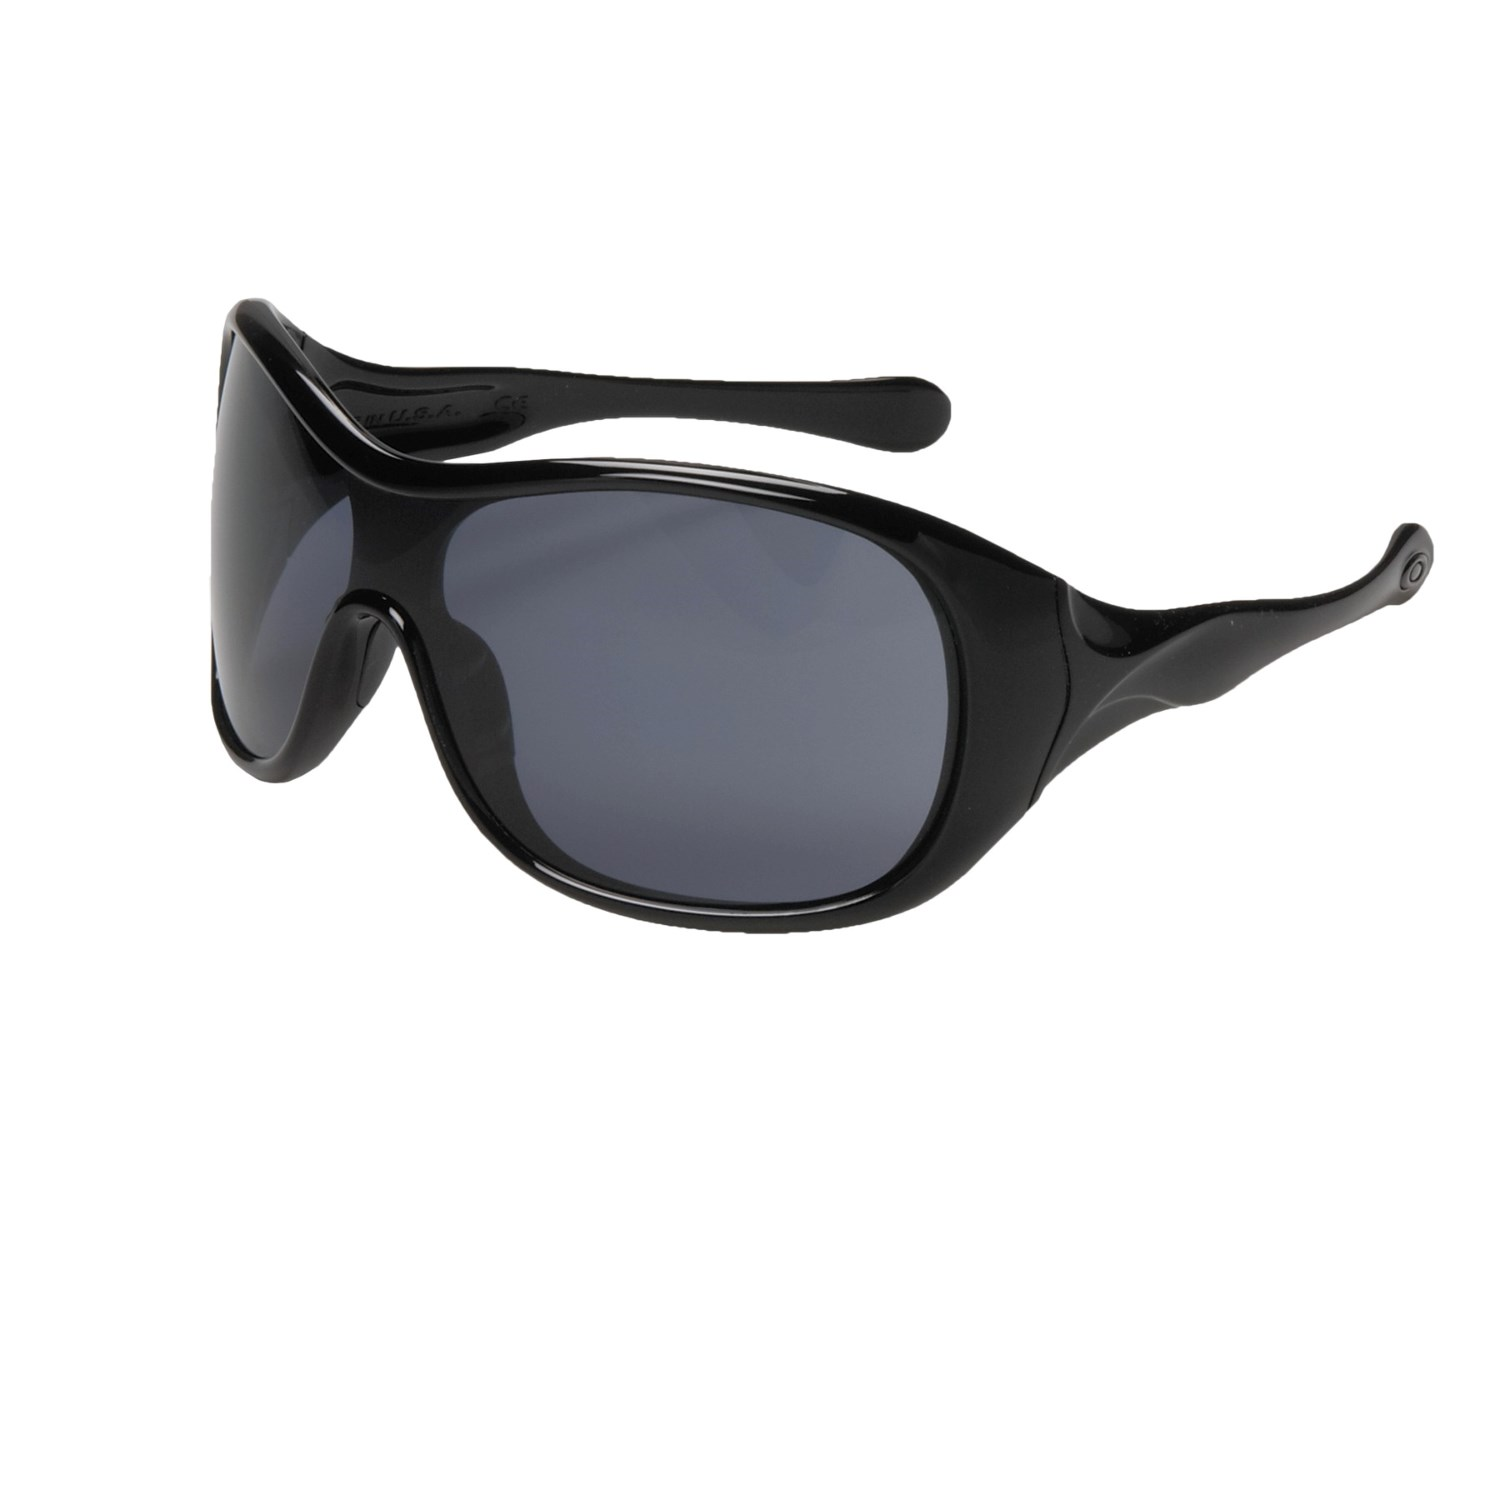 Yoig0bggweiwcbk Latest Oakley Outlet